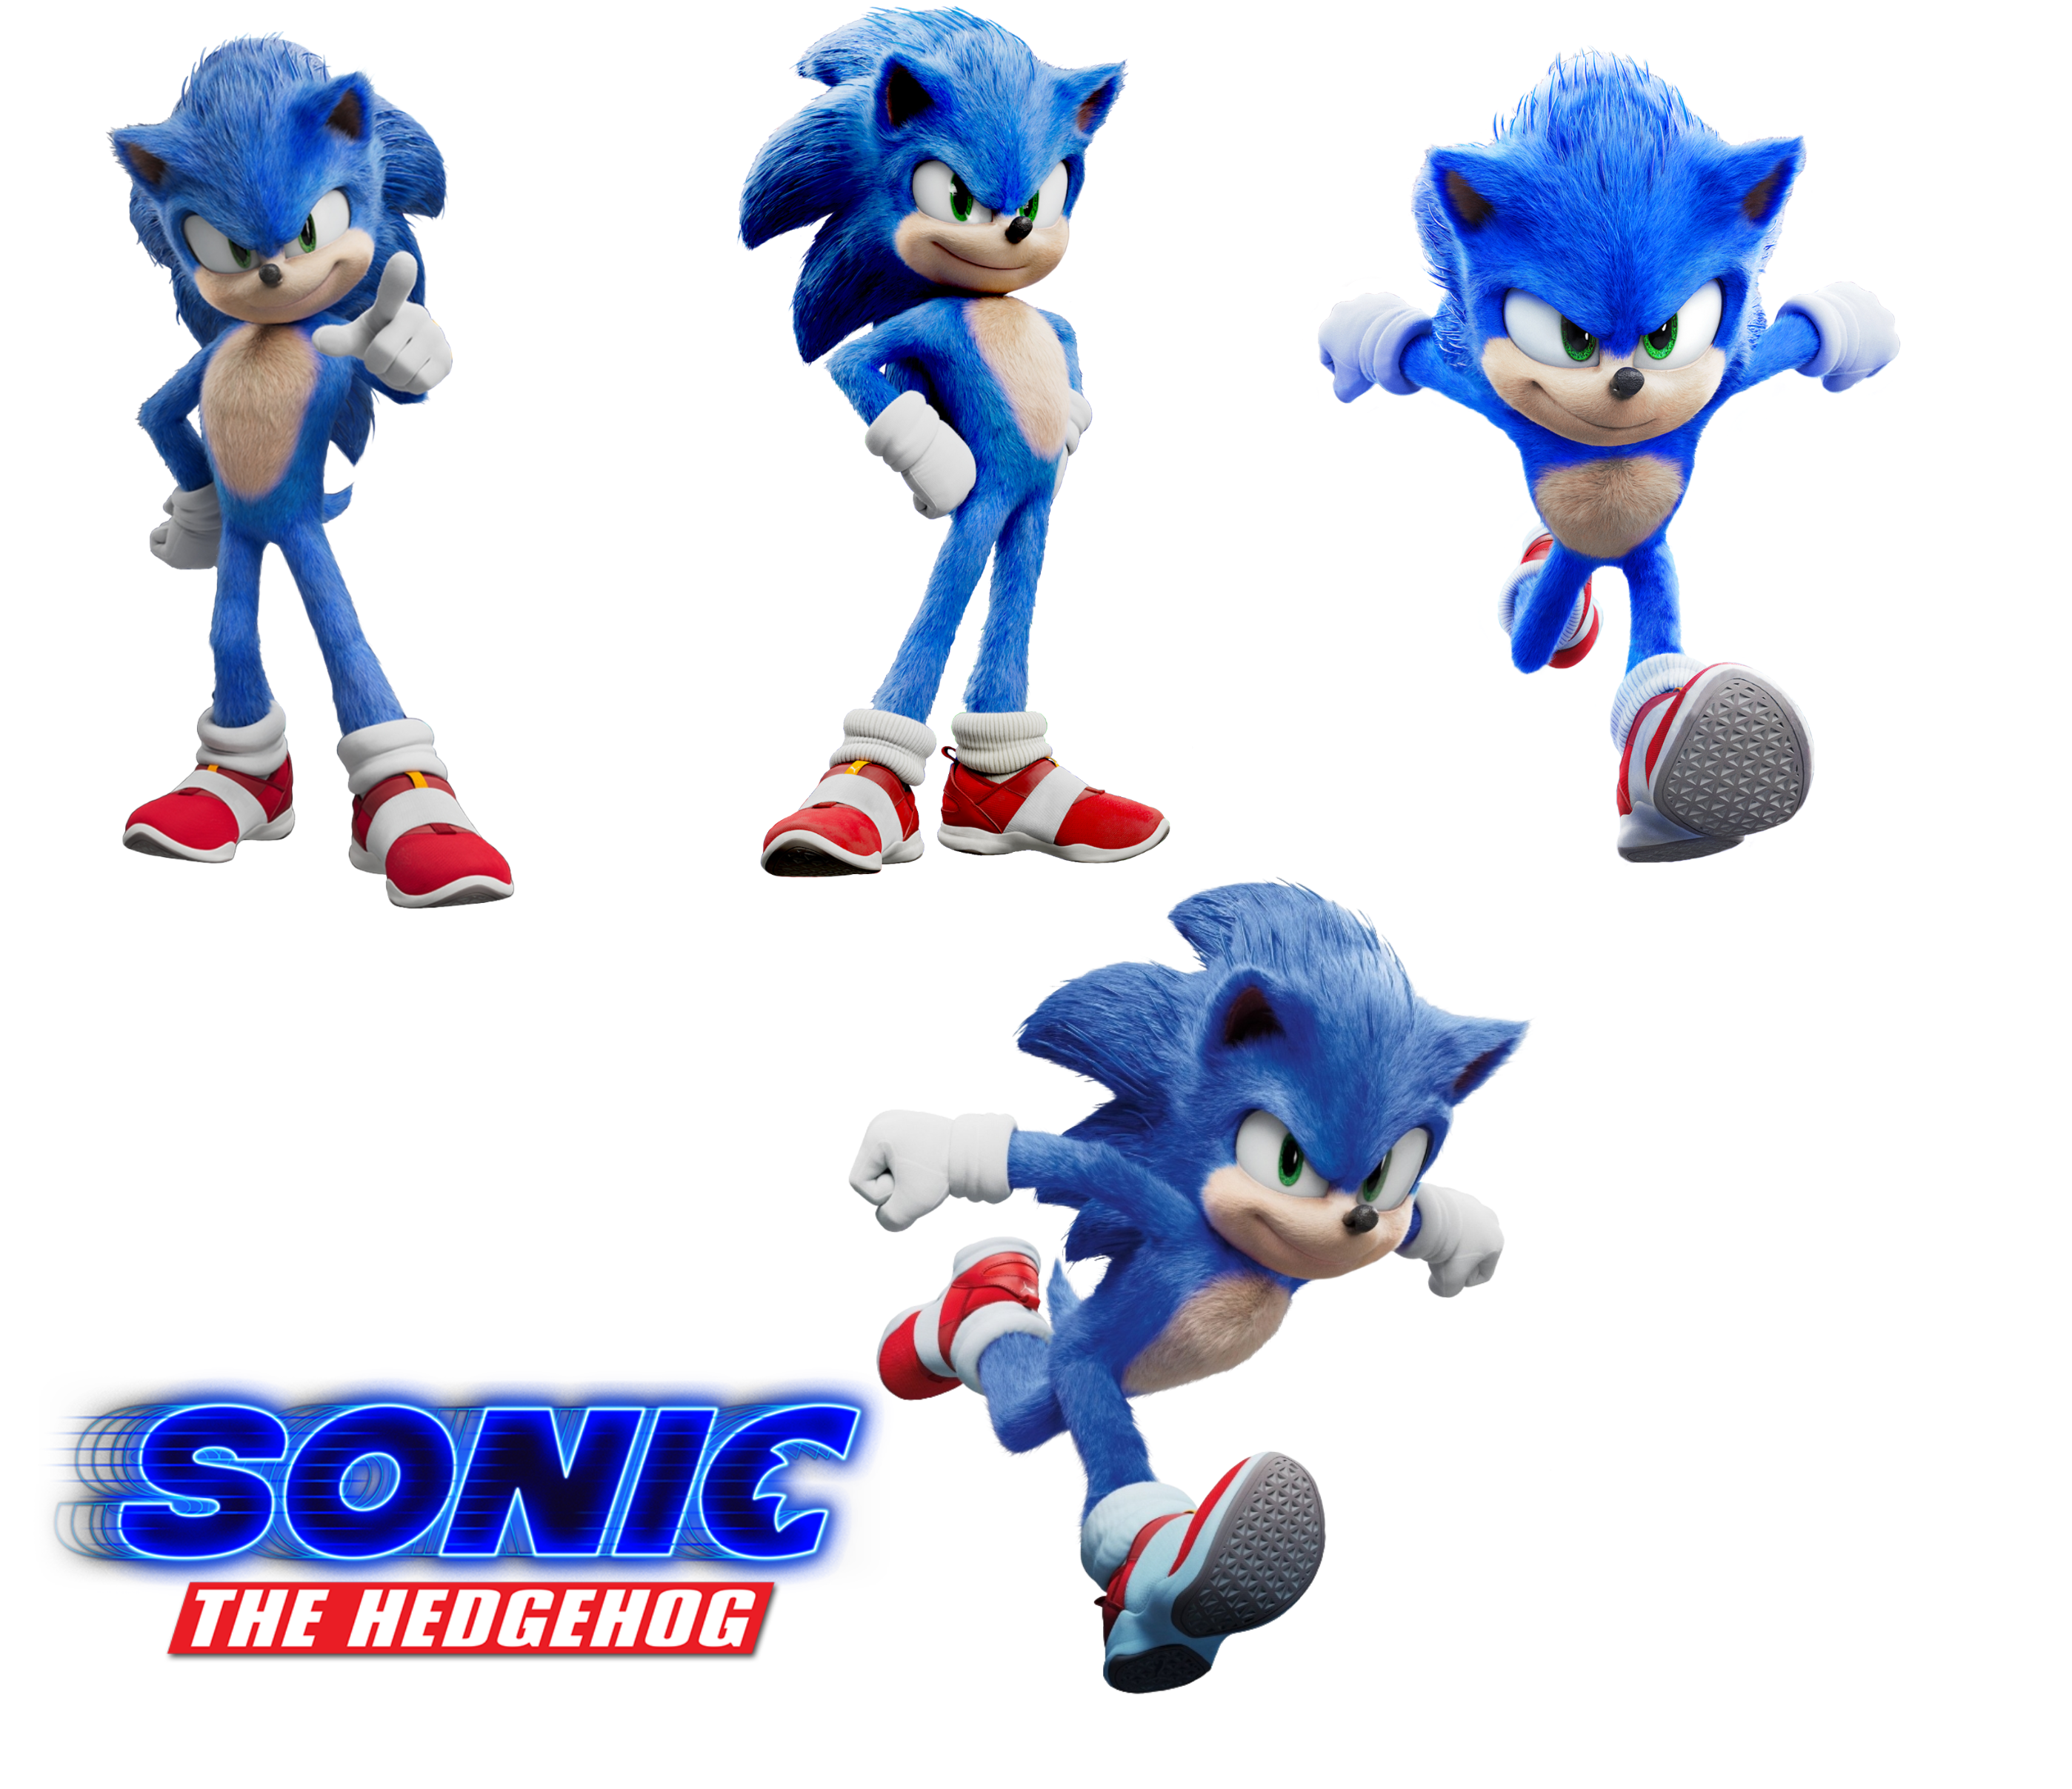 Sonic Movie Artwork Renders Pack By Theroyaldoodlebob On Deviantart